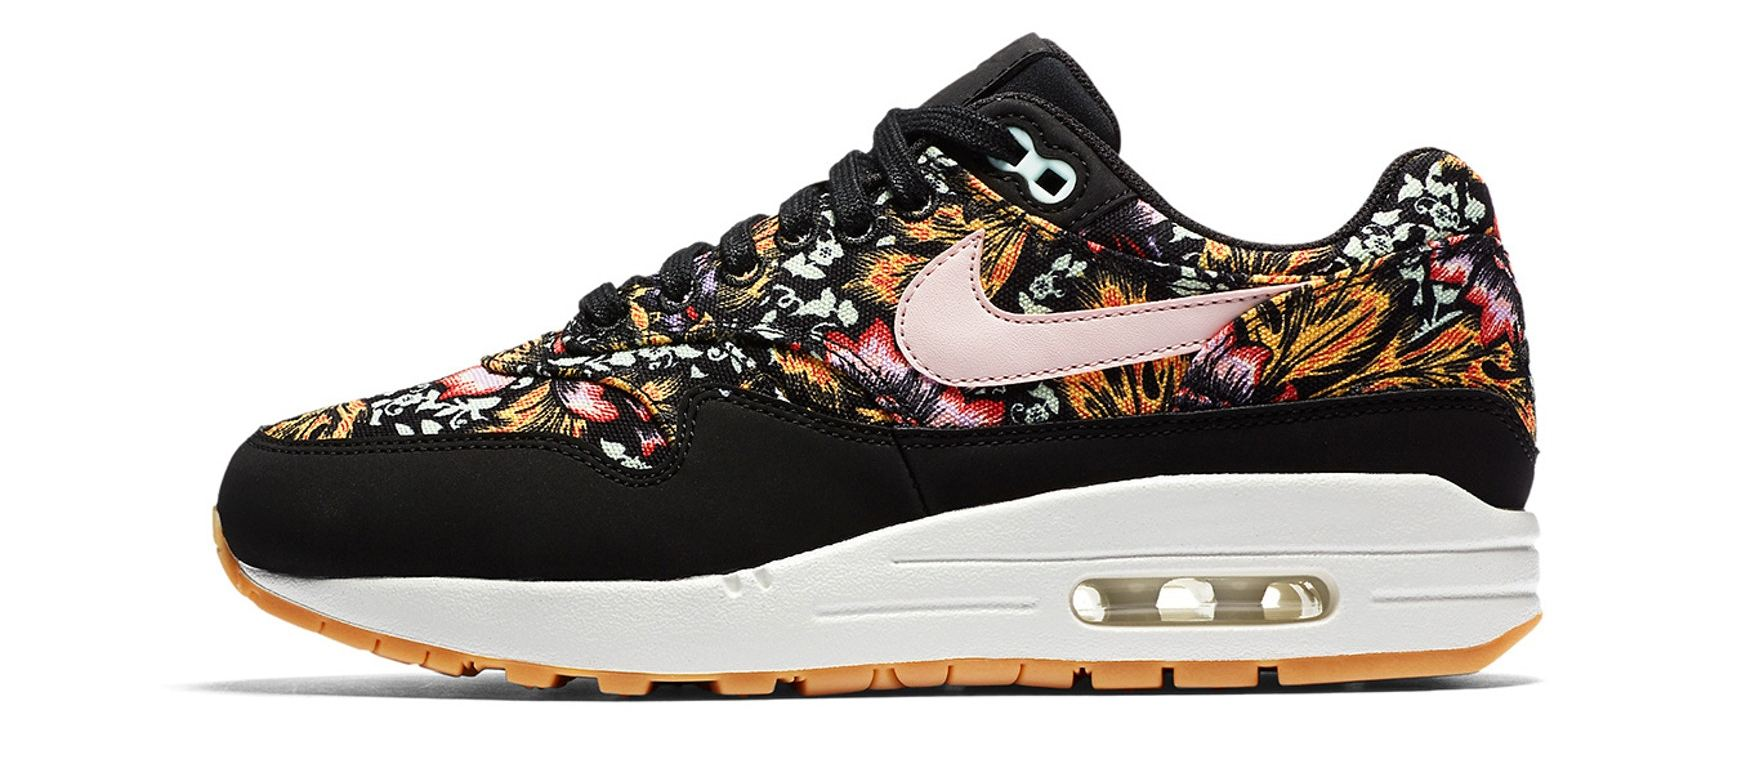 new style 91d3a 78fdd Footwear Nike Gets Spring Fever With New Air Max 1 Floral Makeover